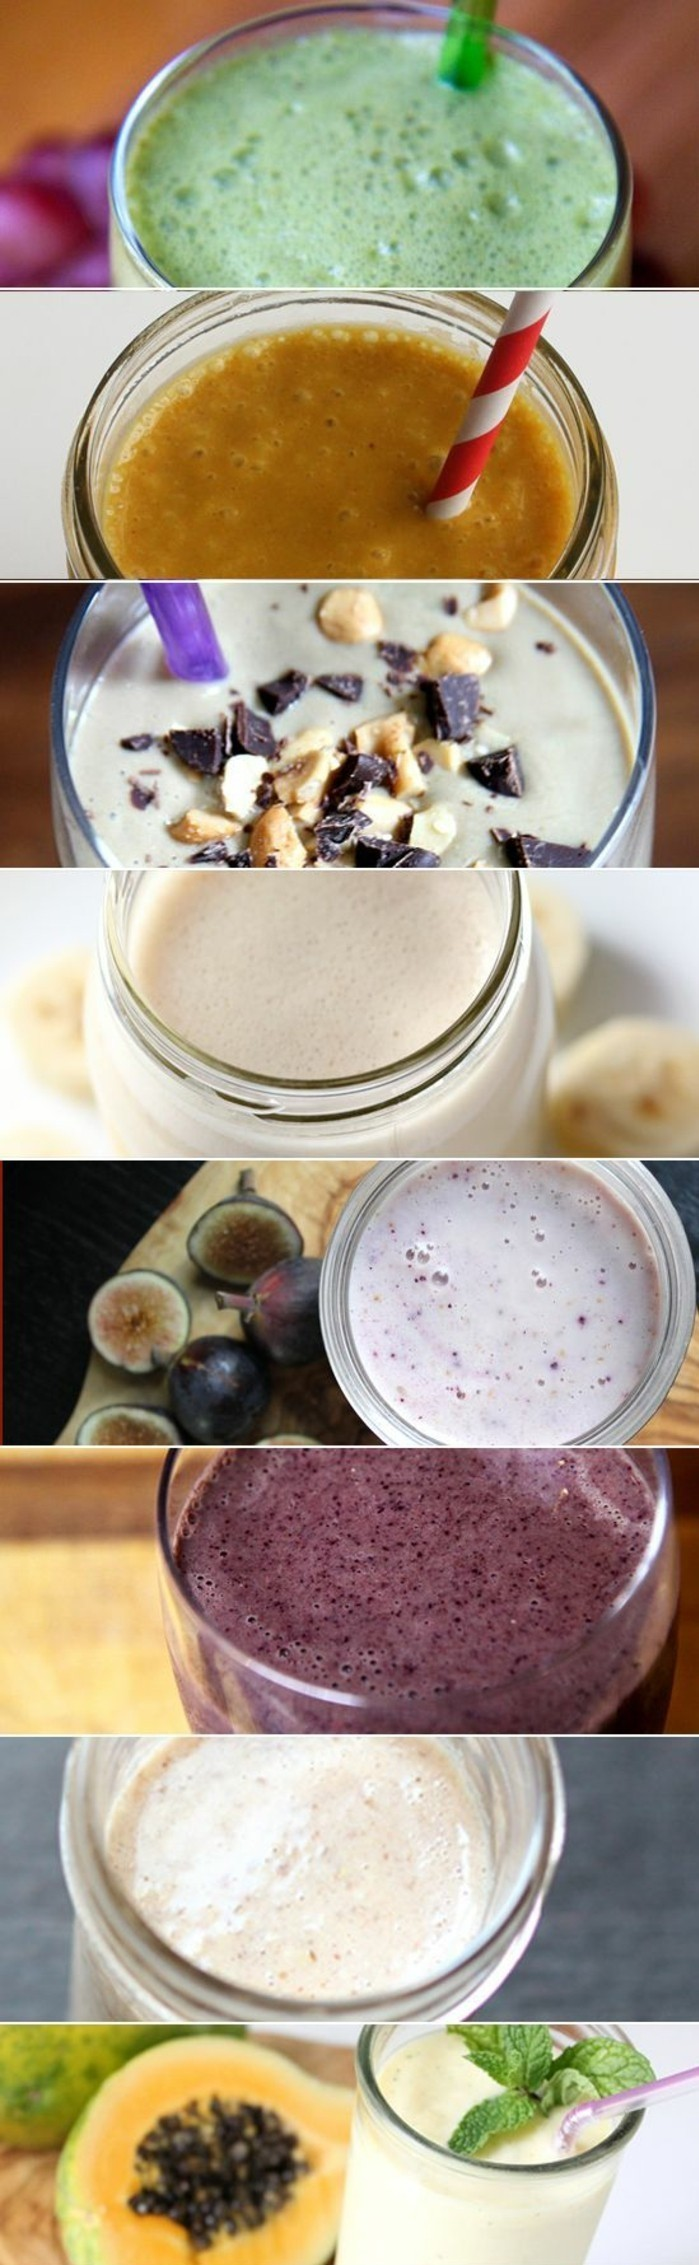 recettes-de-smoothies-simples-a-realiser-idees-delicieuses-et-faciles